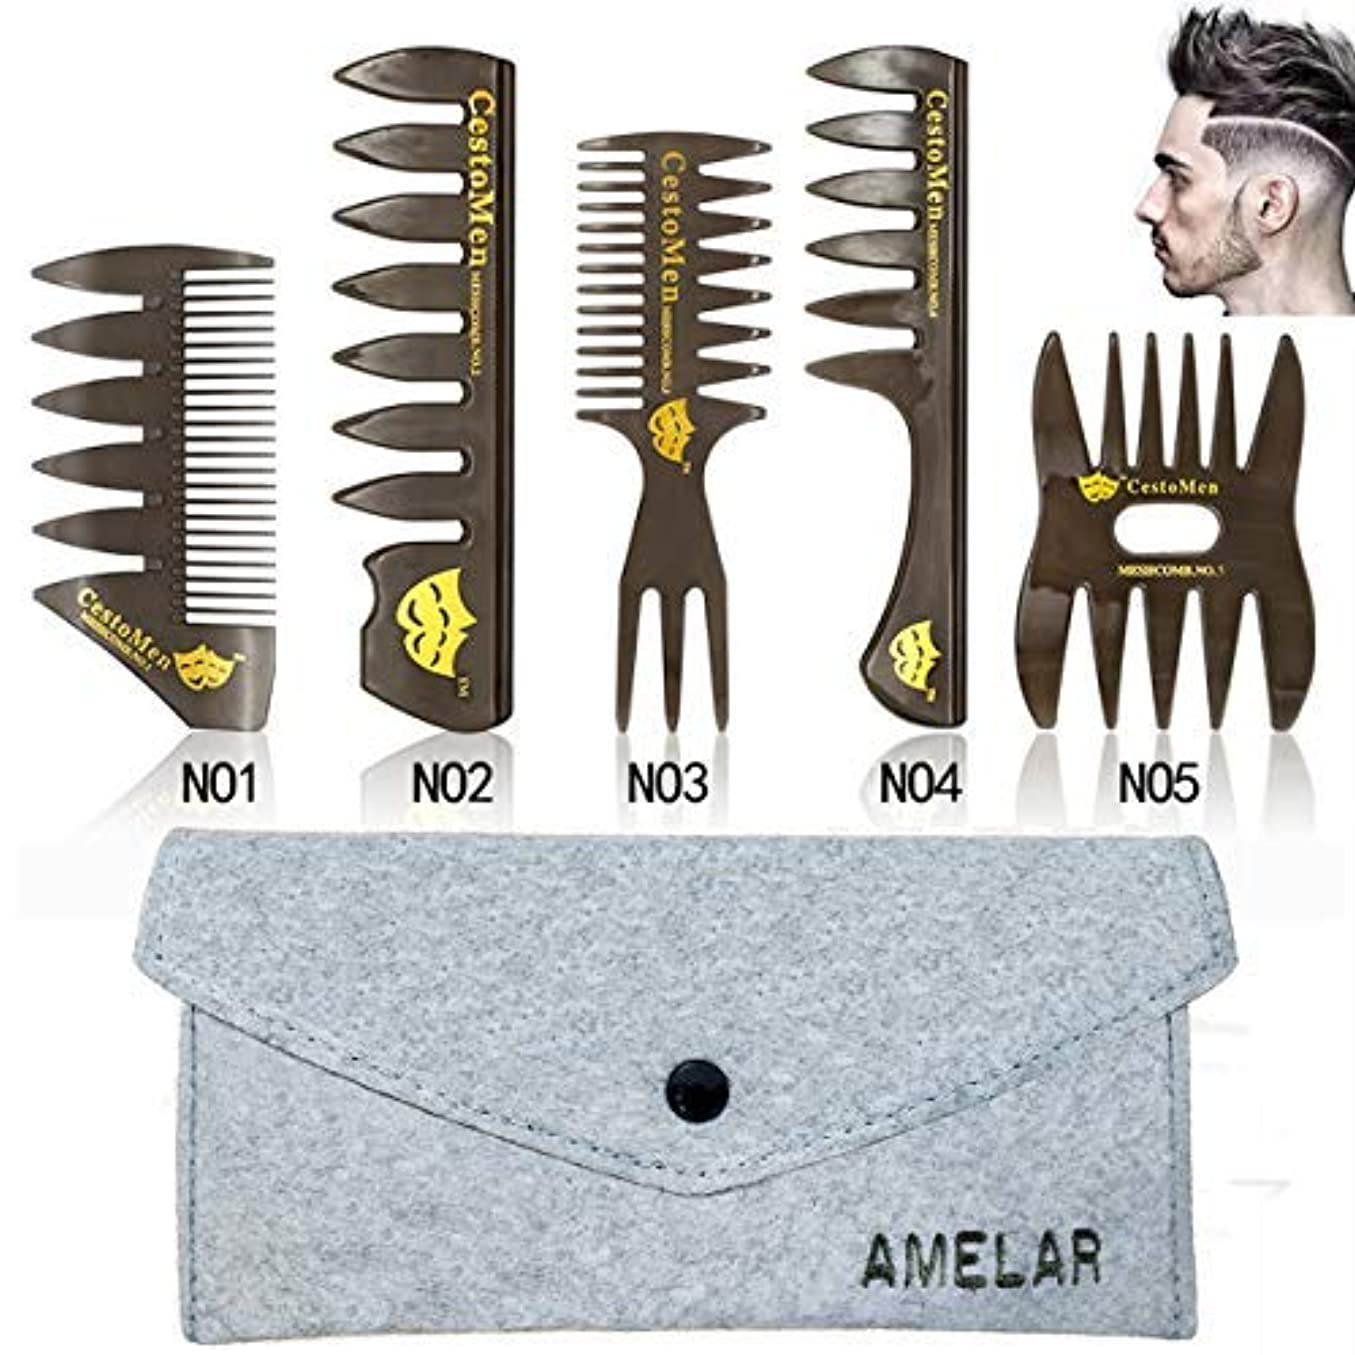 脅迫盟主給料6 PCS Hair Comb Styling Set Barber Hairstylist Accessories,Professional Shaping & Wet Pick Barber Brush Tools,...